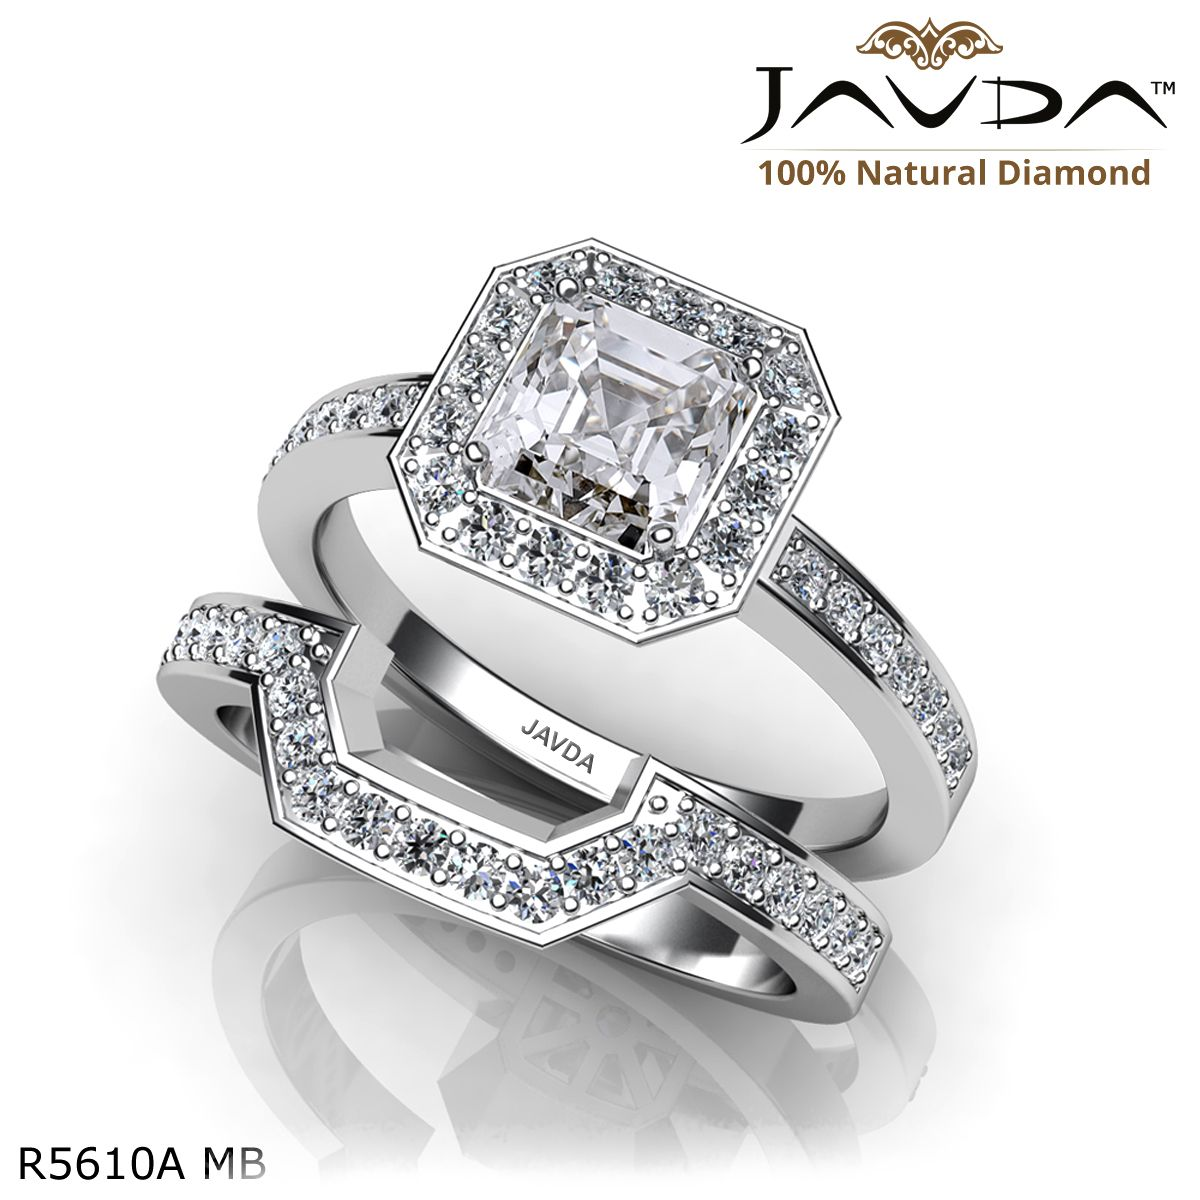 Halo pave setting bridal set asscher diamond engagement ring k